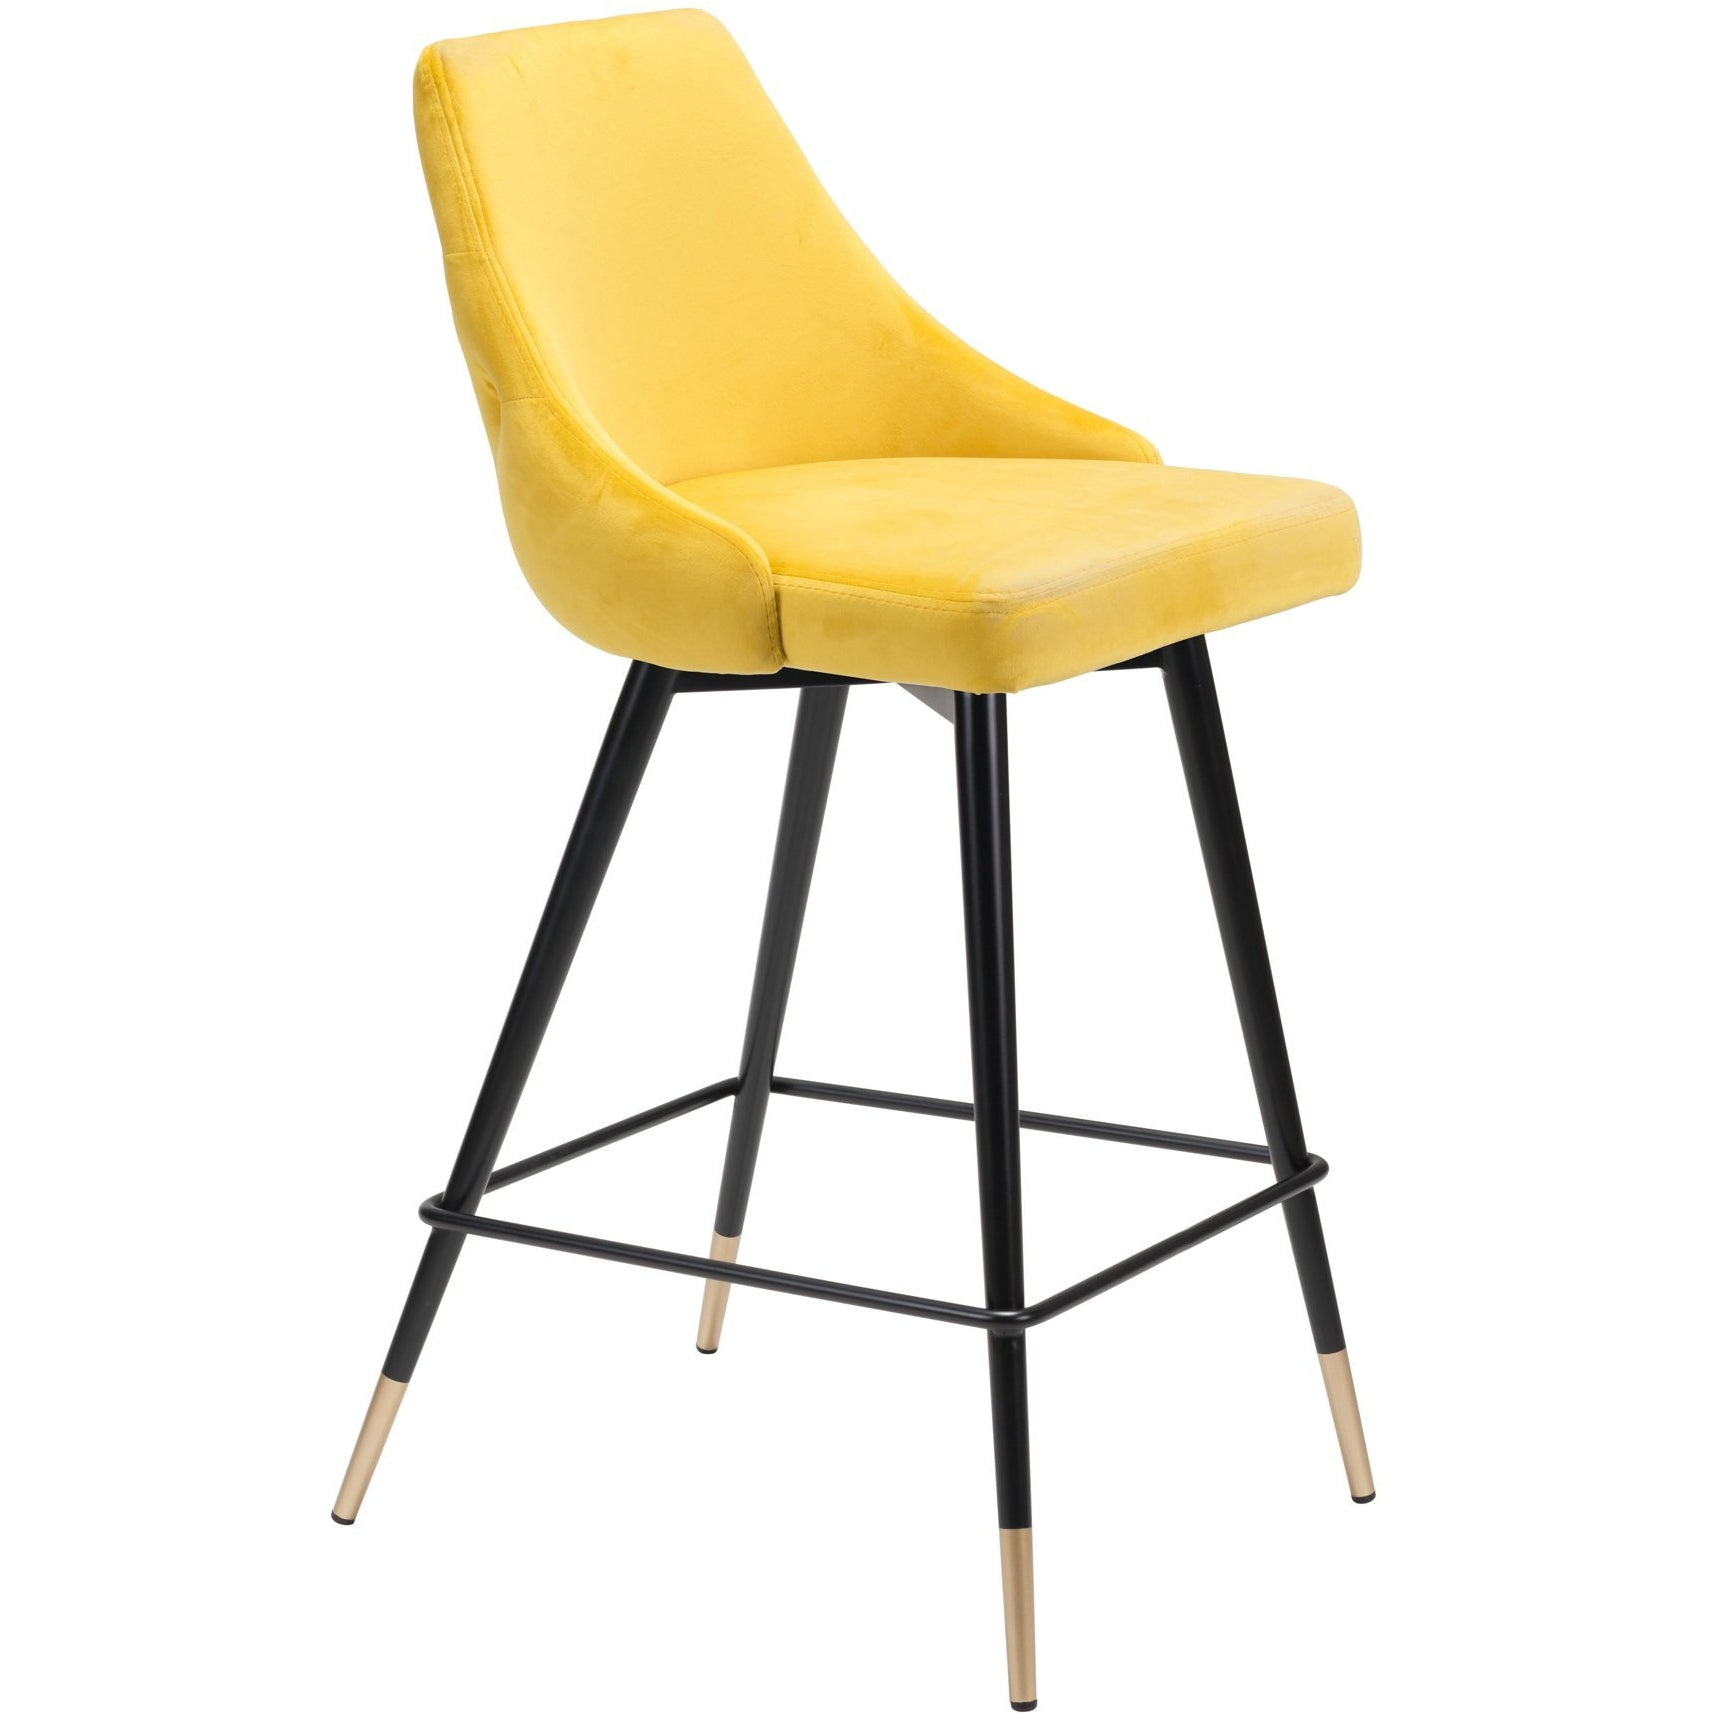 Stupendous Luxe Yellow Velvet Counter Stool With Gold Tipped Steel Legs Creativecarmelina Interior Chair Design Creativecarmelinacom